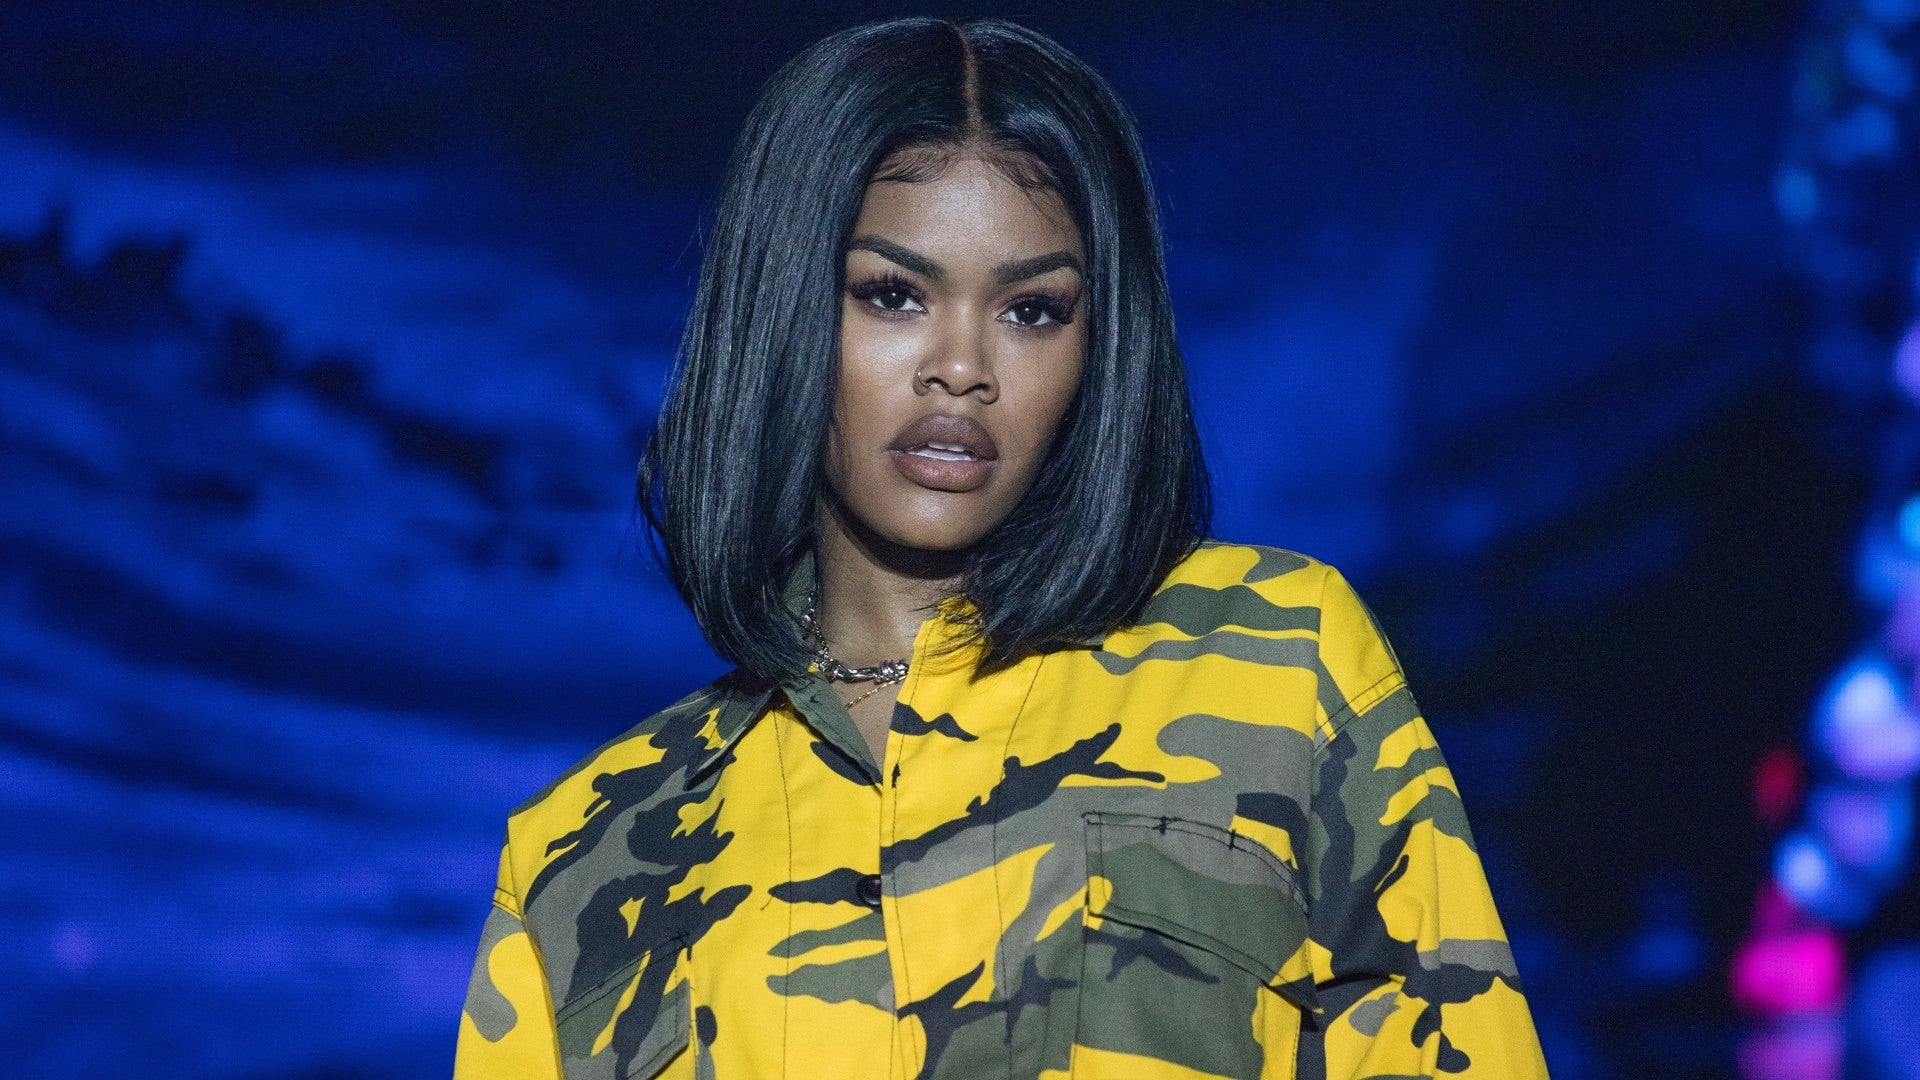 Teyana Taylor is the first black woman named as the sexiest woman in the world